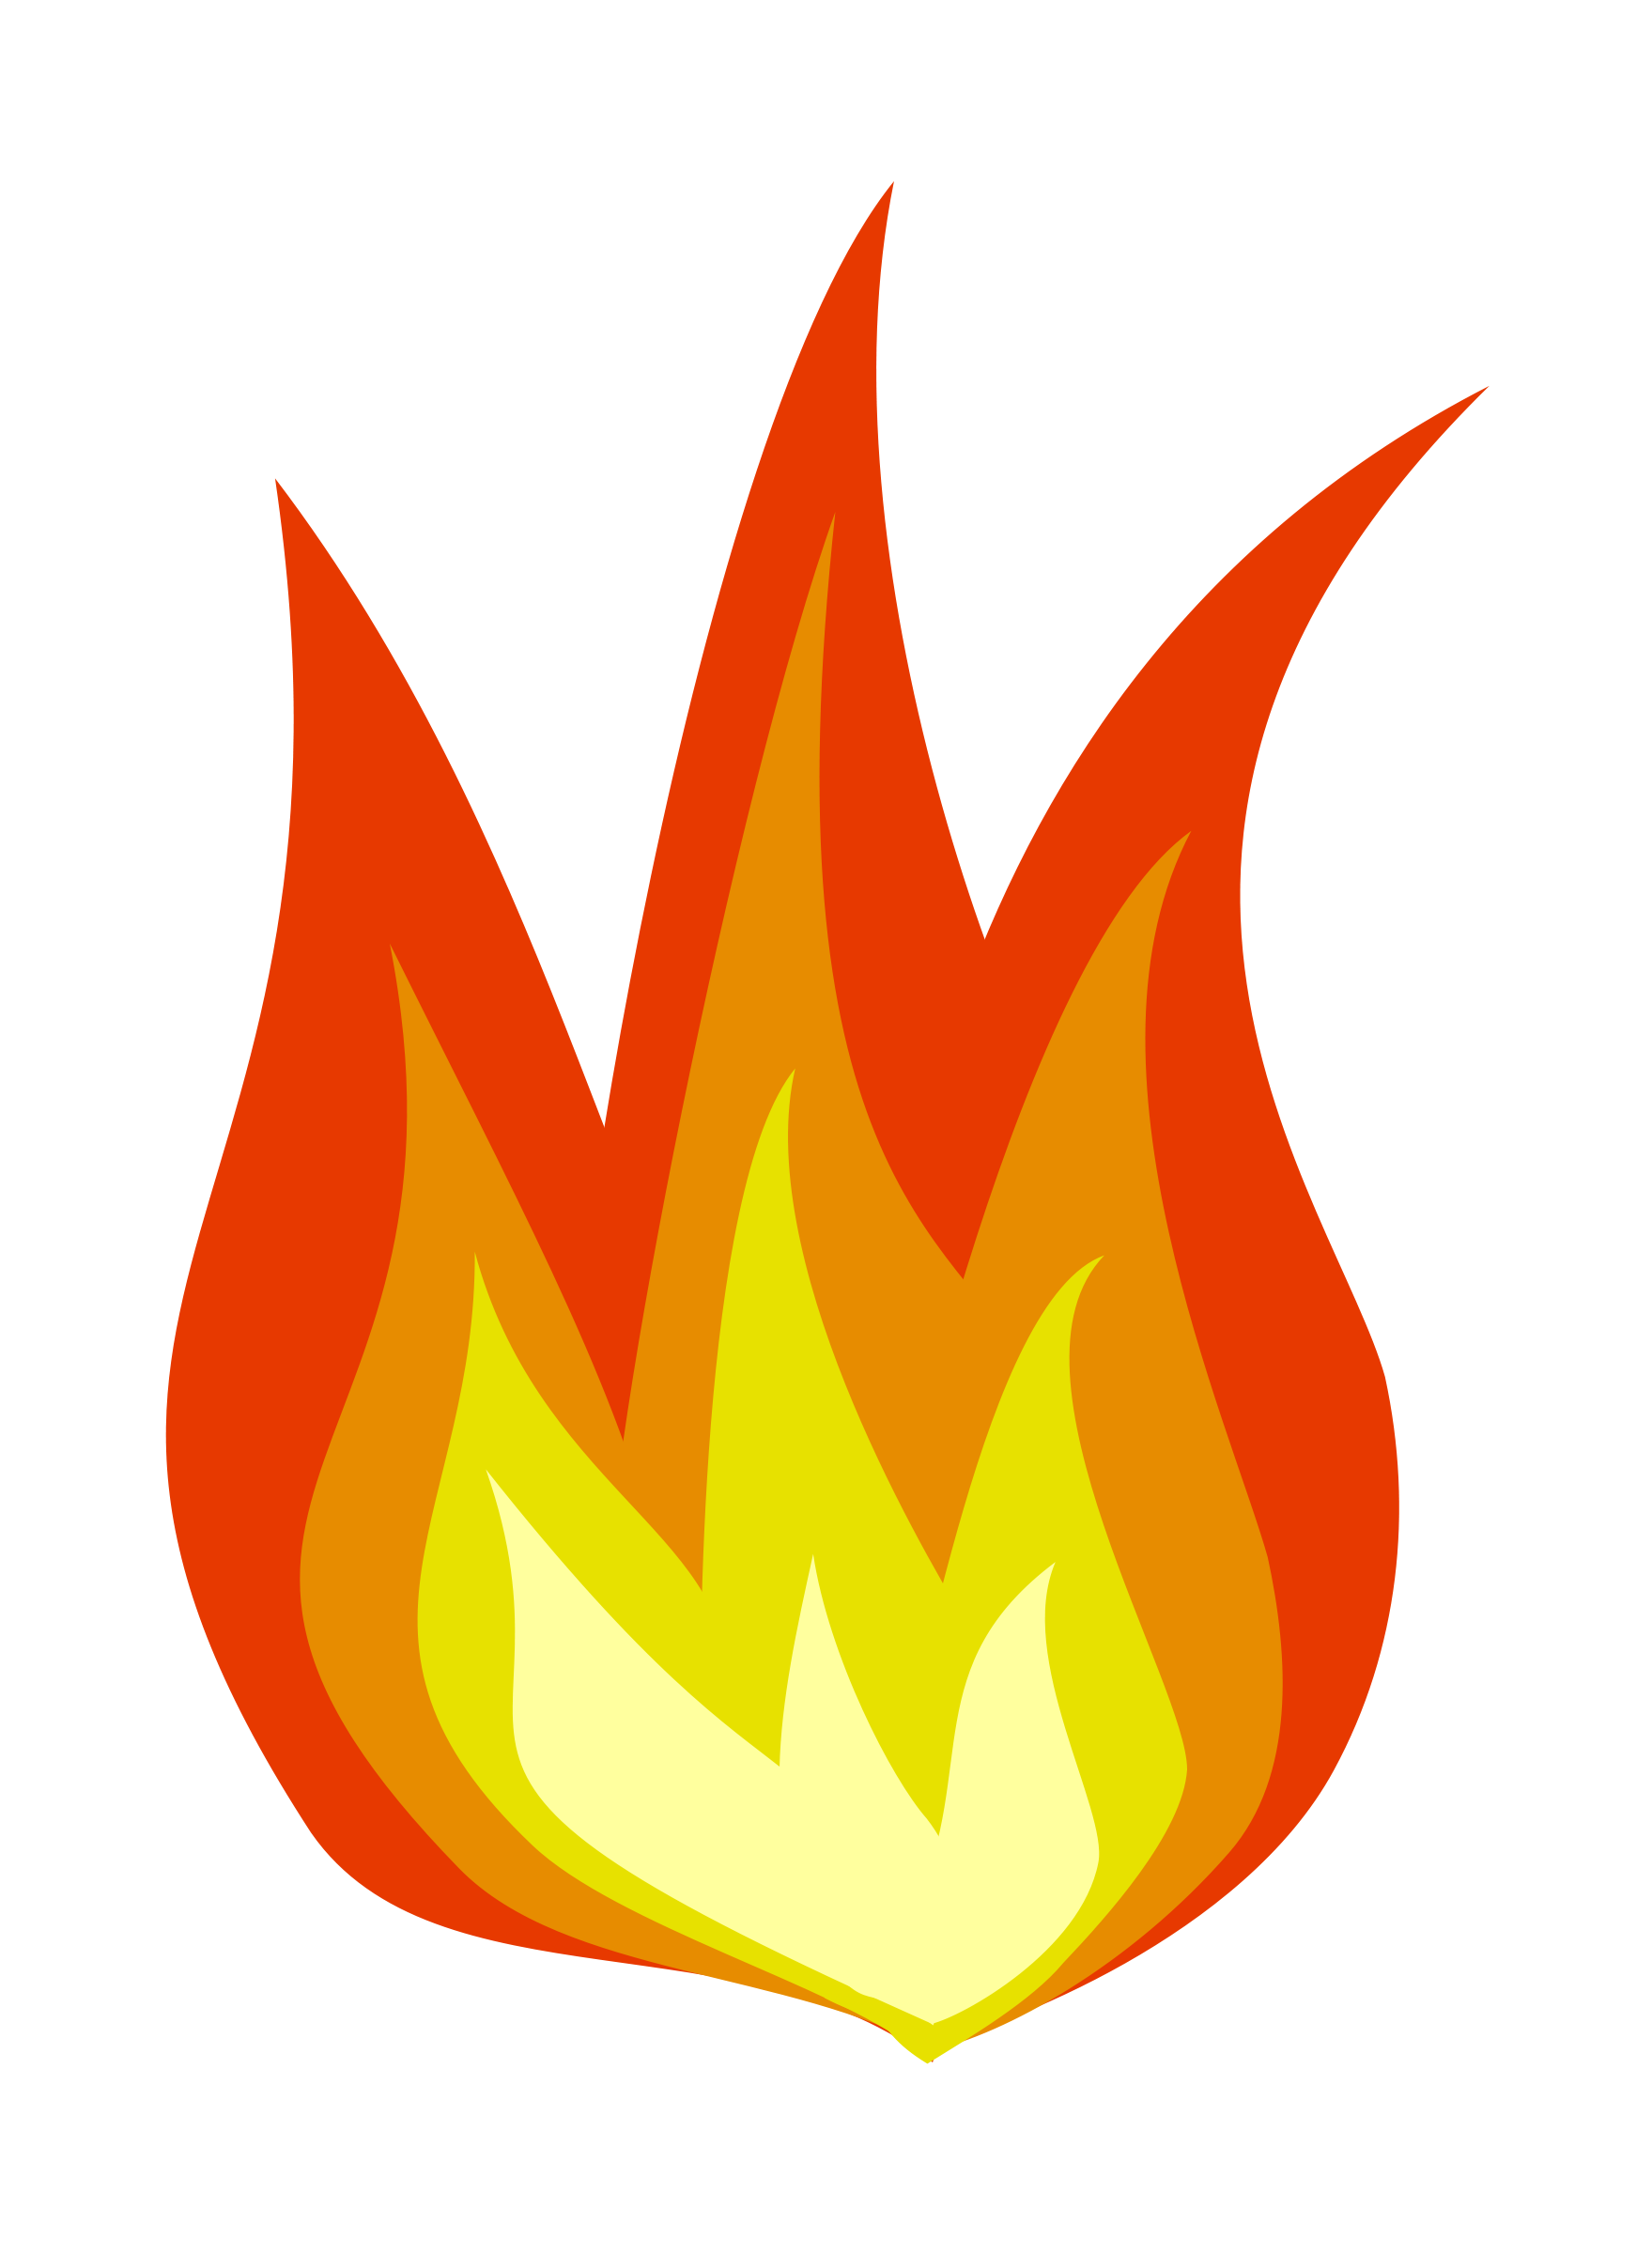 Fire Clipart Border | Clipart Panda - Free Clipart Images